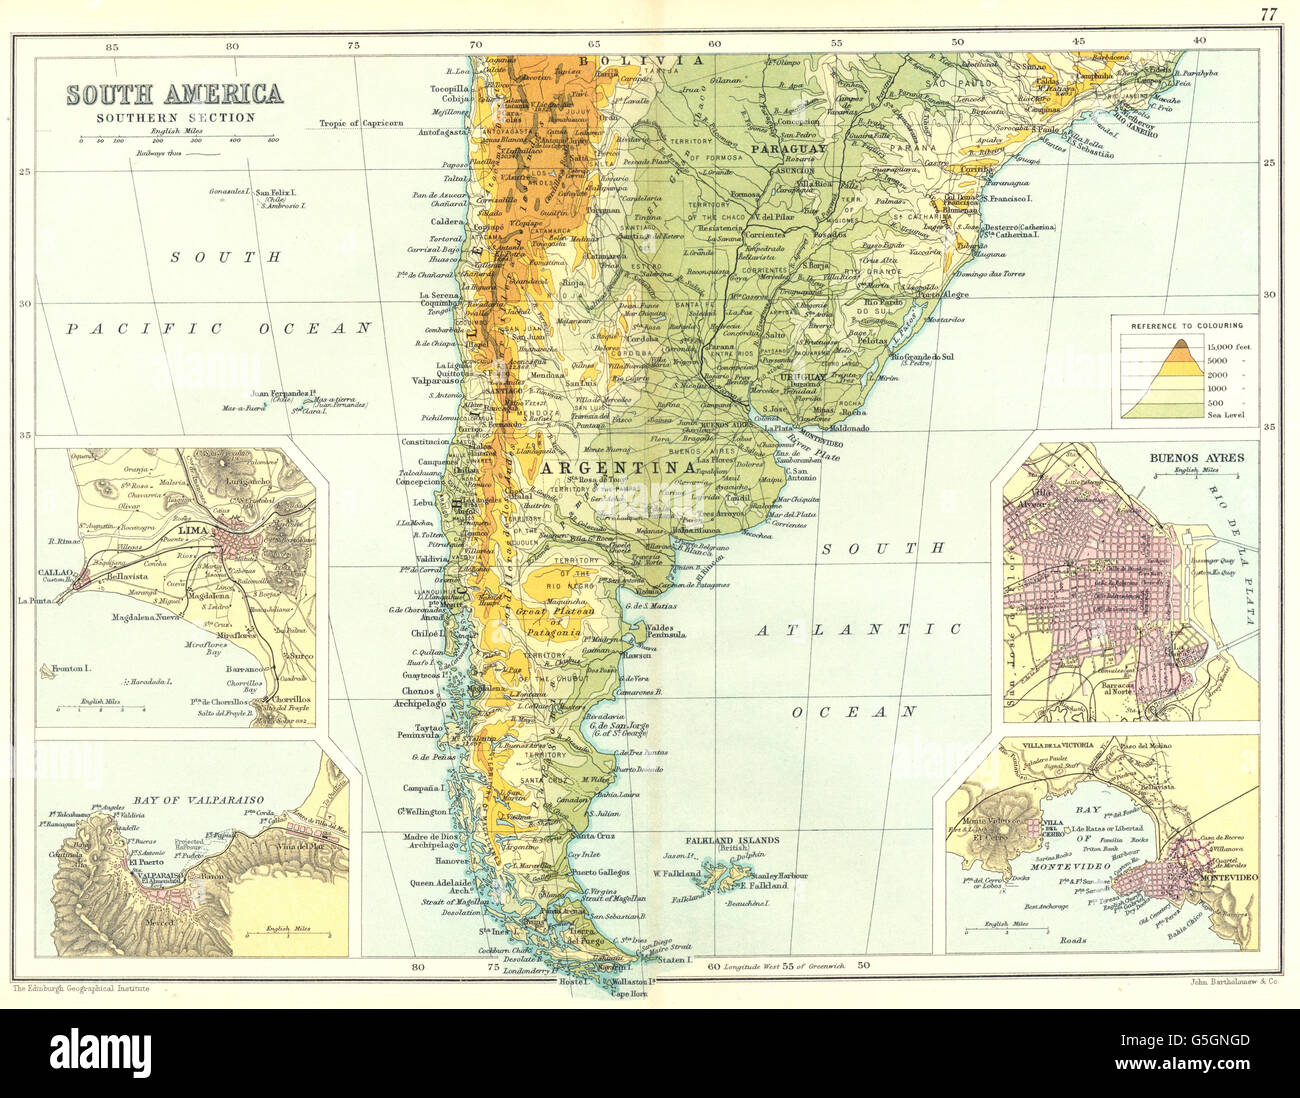 ARGENTINA CHILE URUGUAY Inset Lima Valparaiso Buenos Aires Stock - Argentina chile map